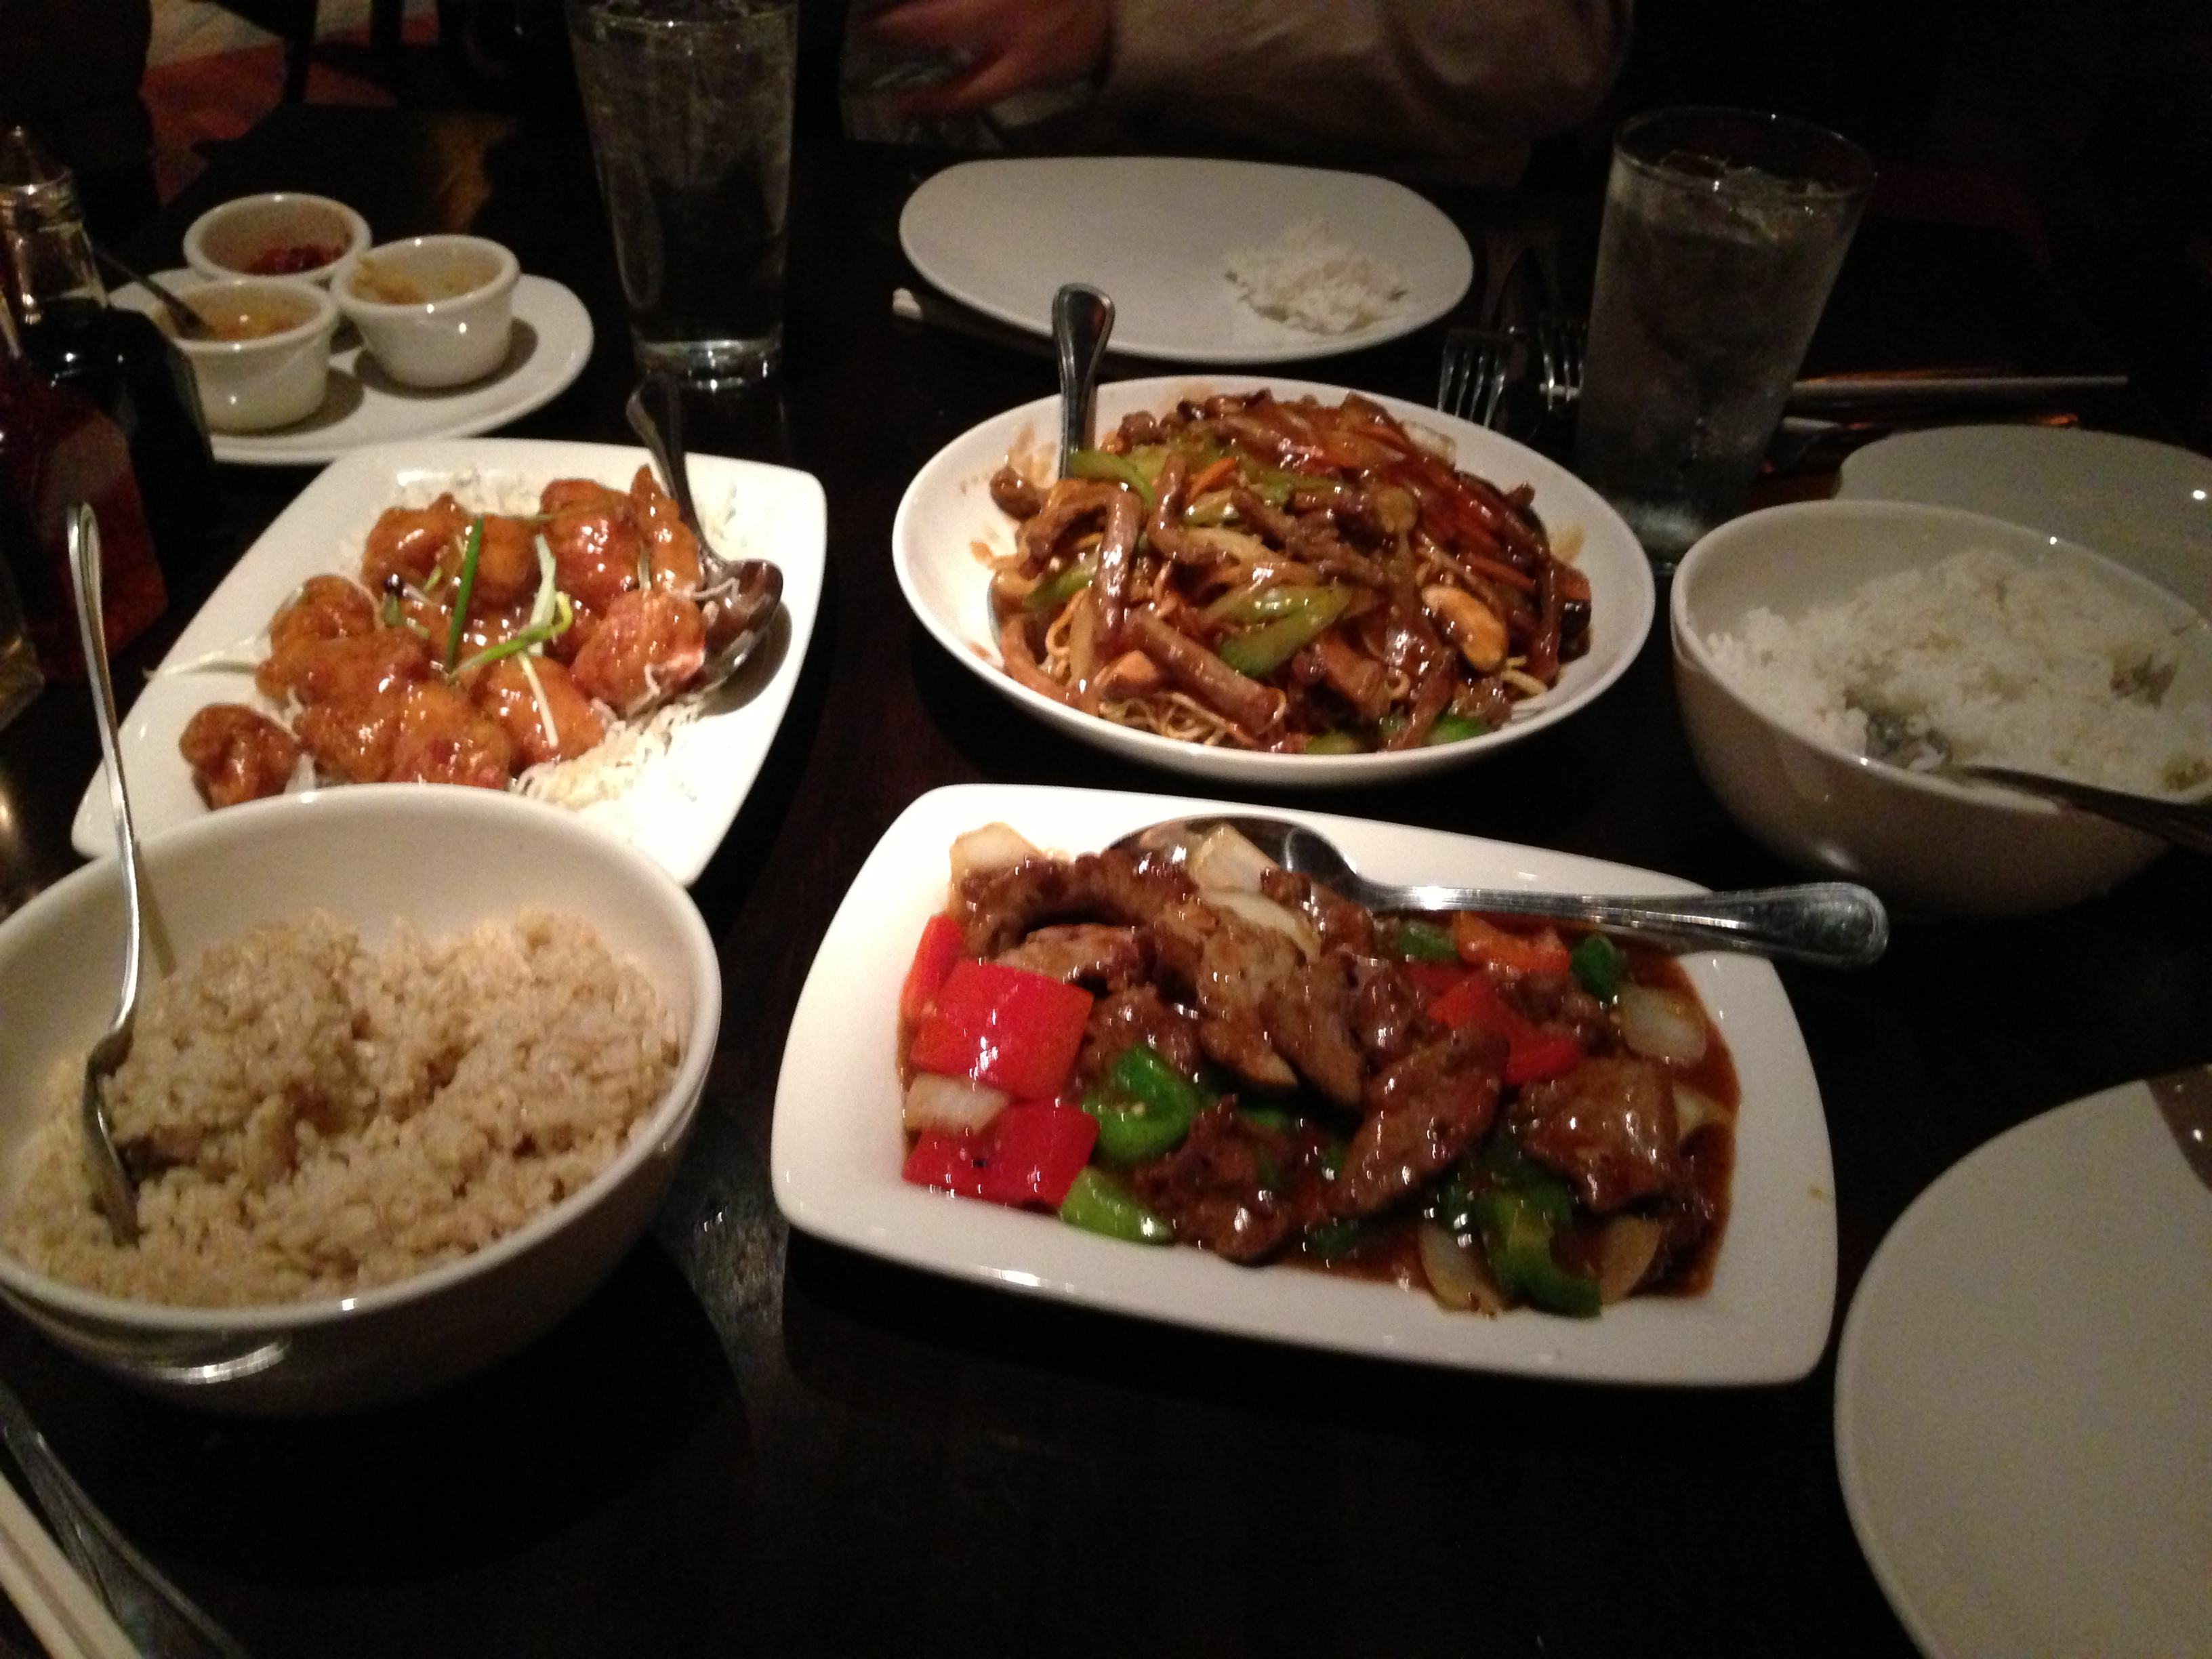 The entrees and rice we got during a visit in February.